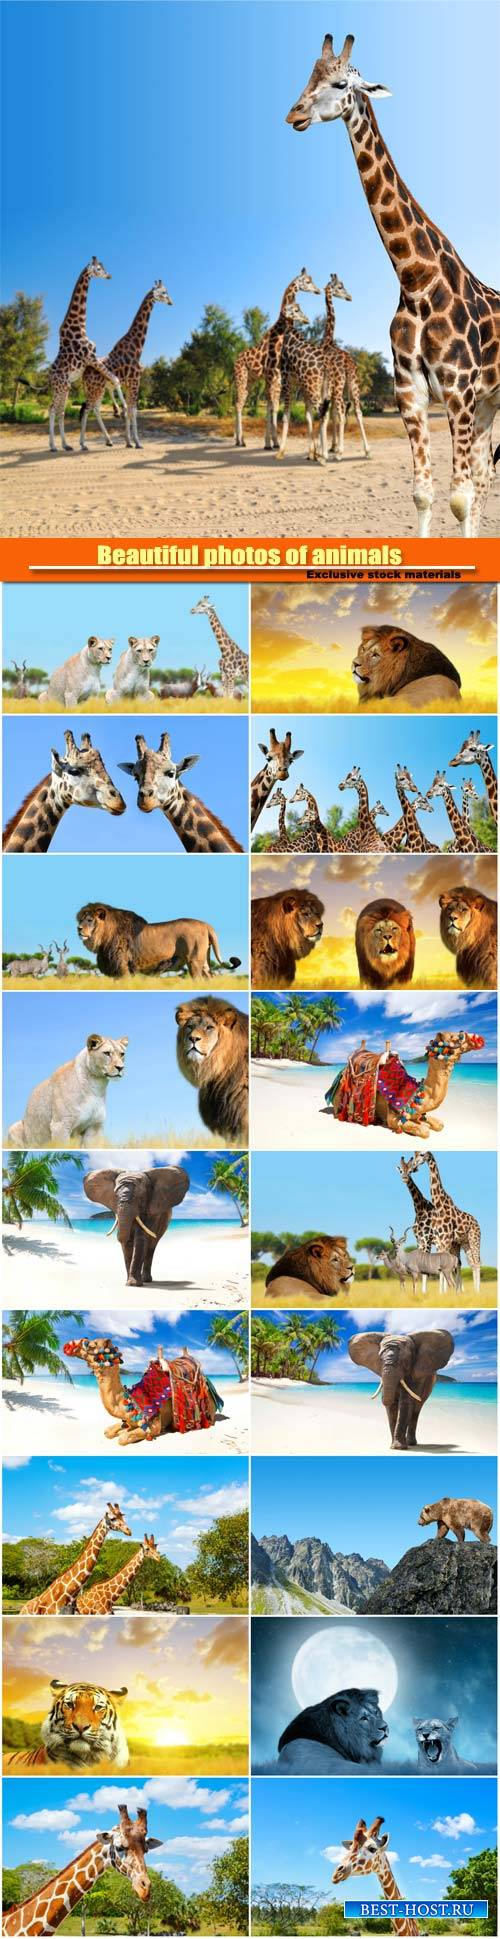 Beautiful photos of animals, lions, giraffes, camels and tigers